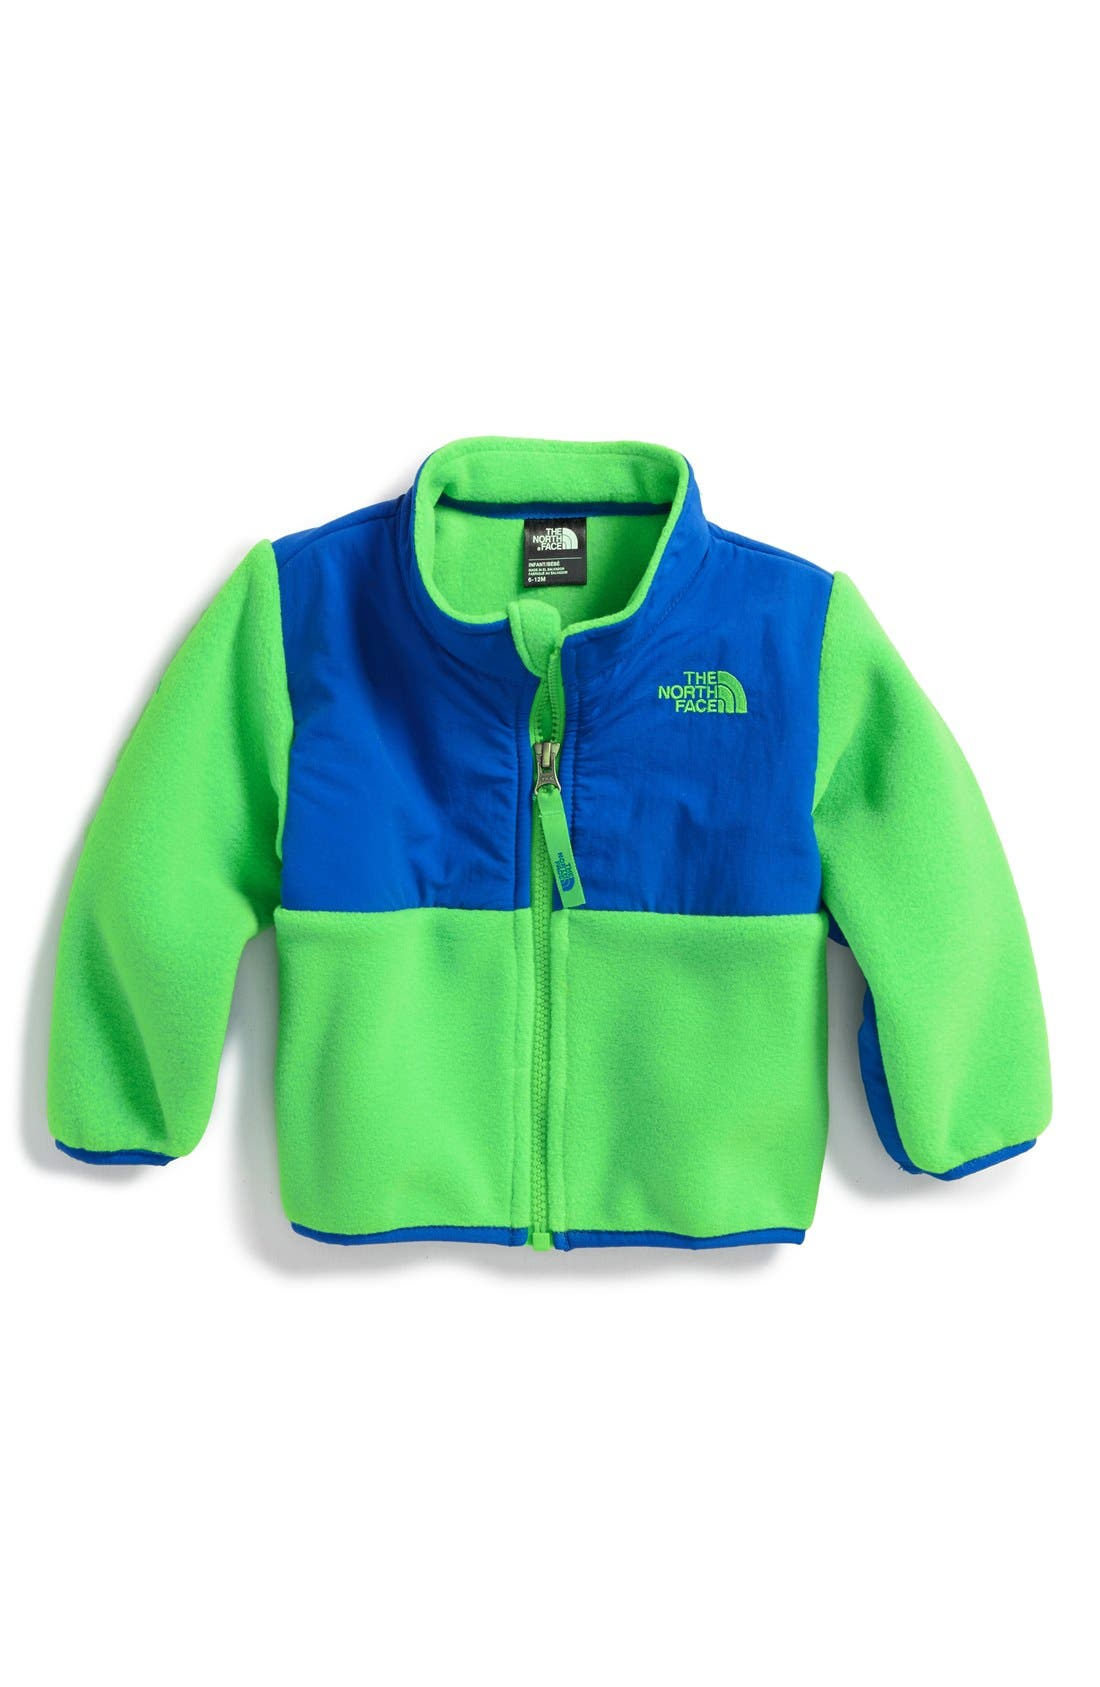 Main Image - The North Face 'Denali' Recycled Fleece Jacket (Baby Boys)